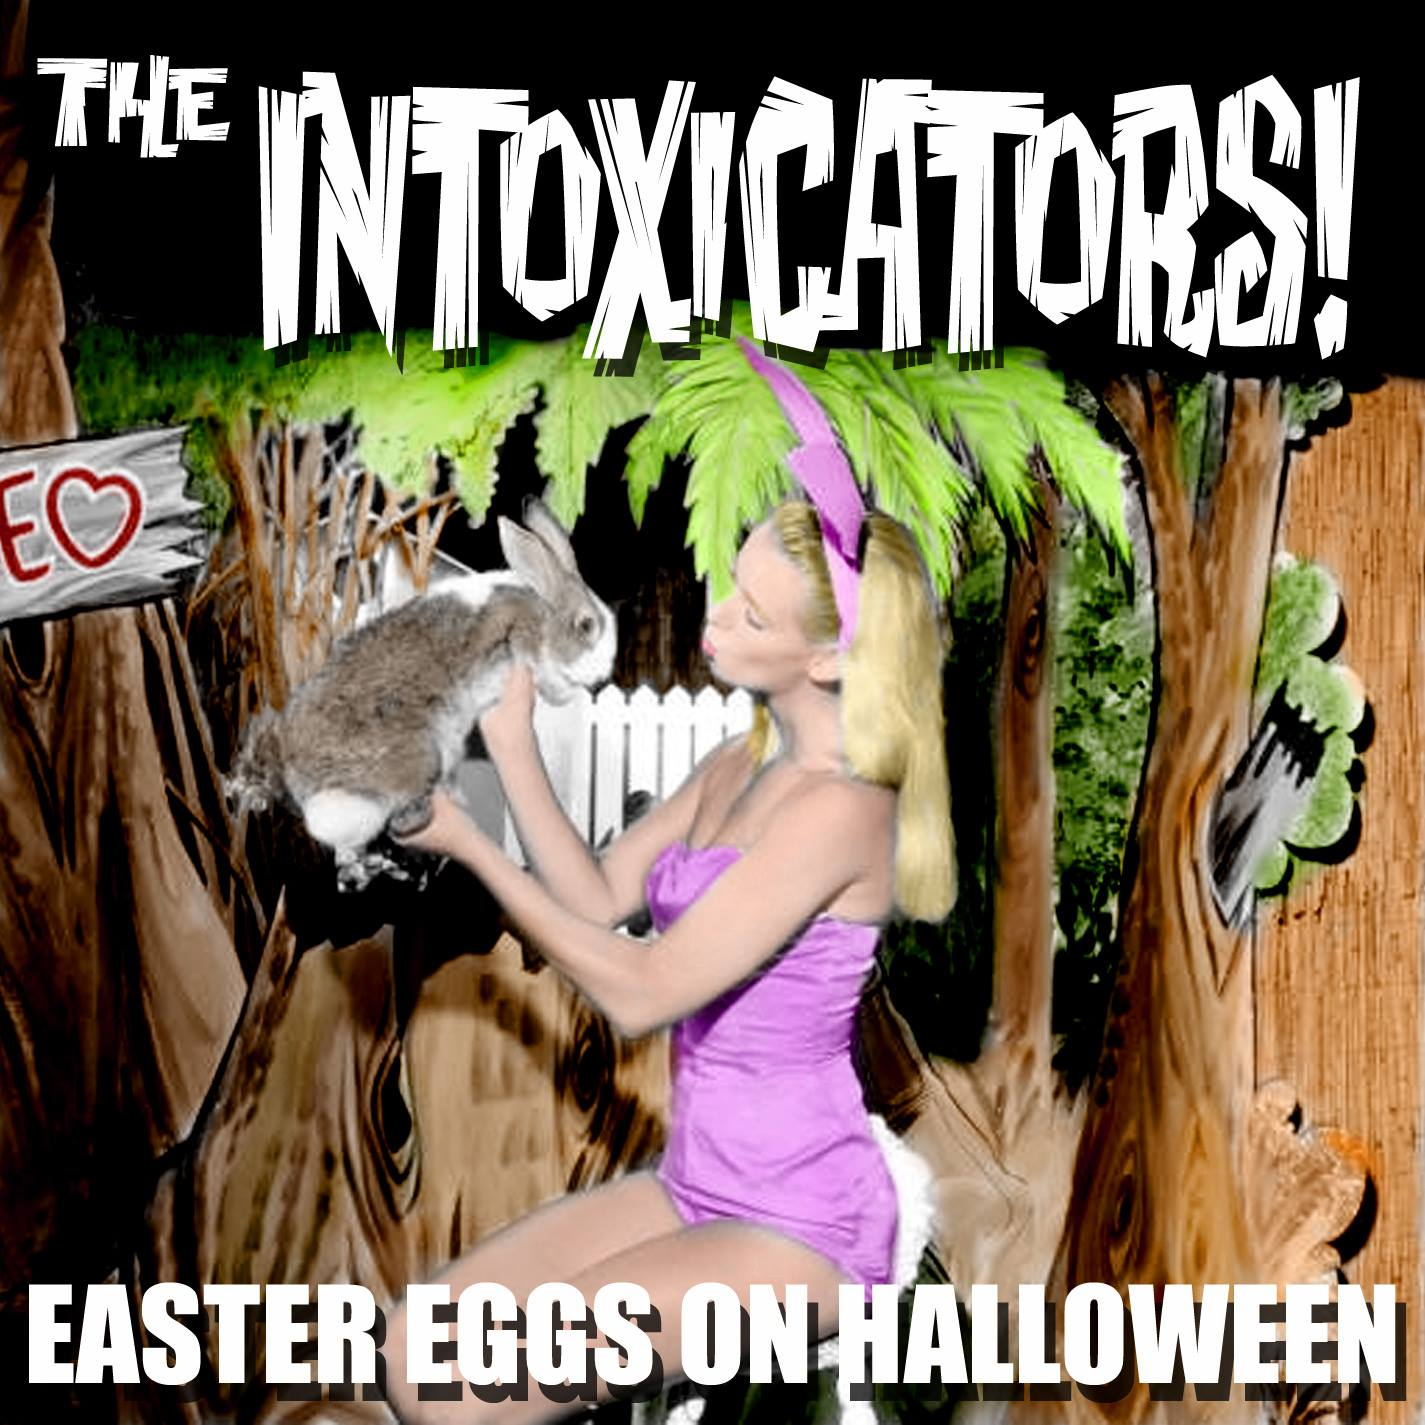 The Intoxicators - Easter Eggs on Halloween